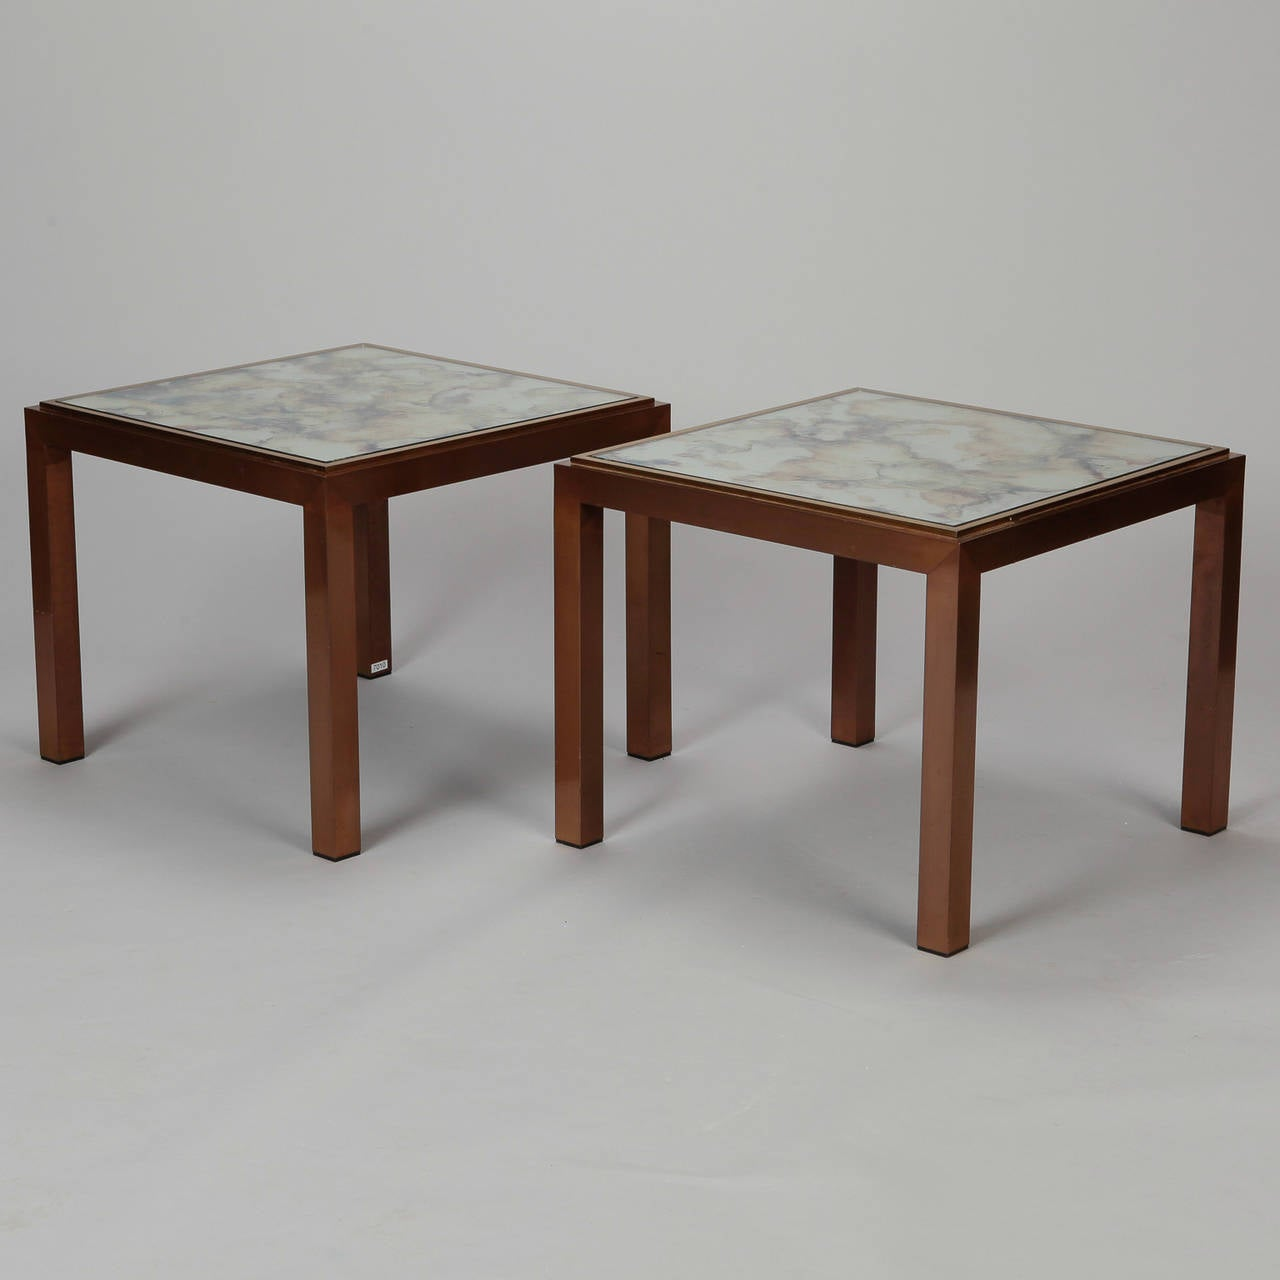 Mid-20th Century Pair of Square Bronze Metal End Tables with Marbelized Mirror Tops For Sale